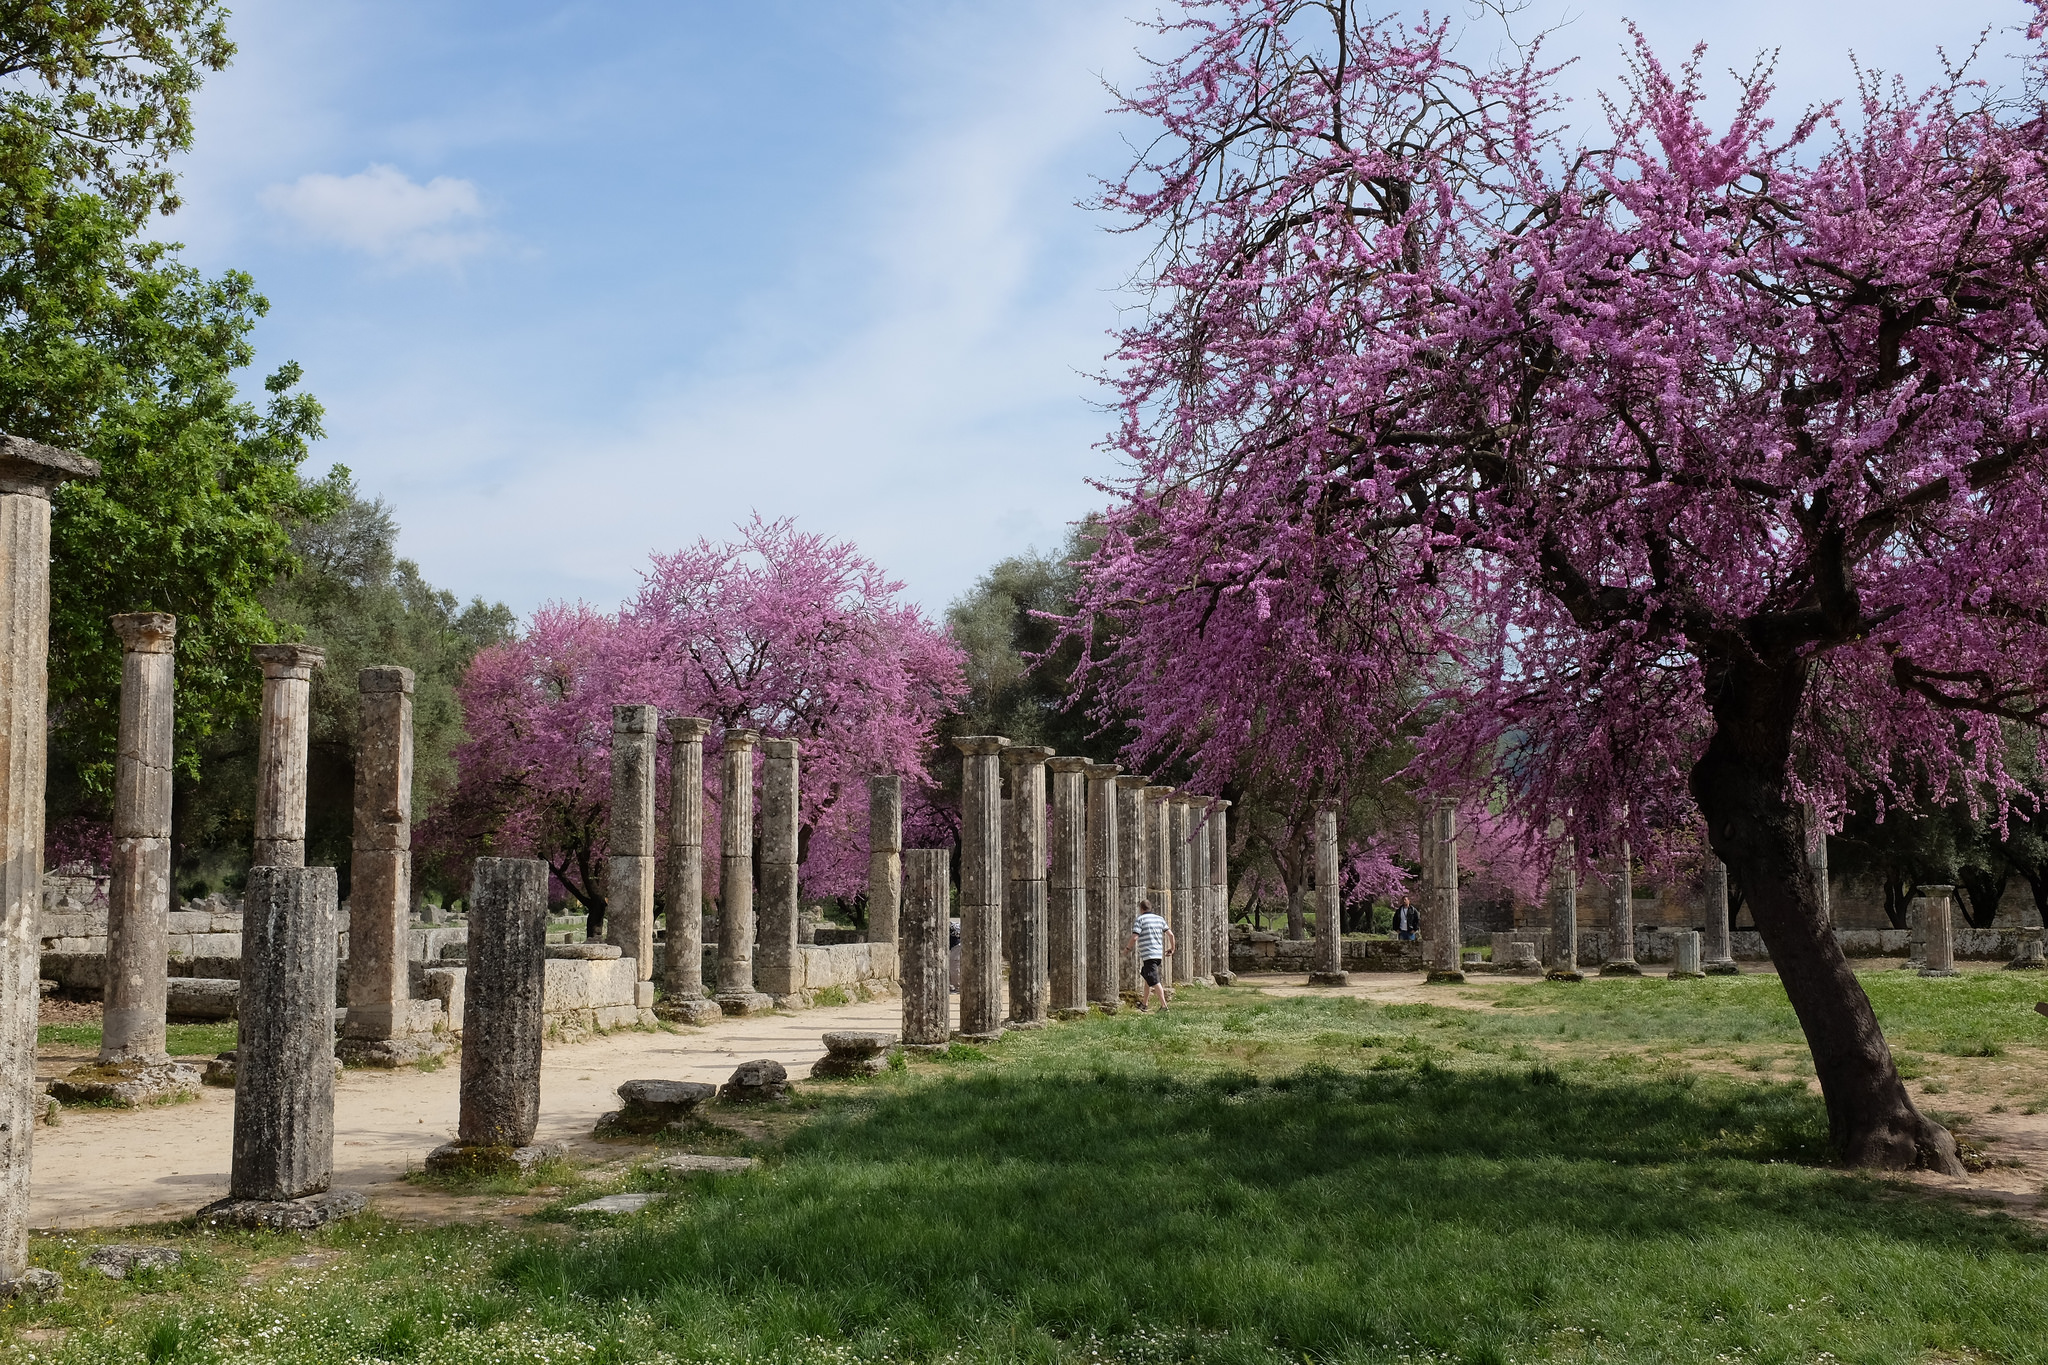 Cercis blooms in Olympia, Greece   © Kristoffer Trolle/Flickr